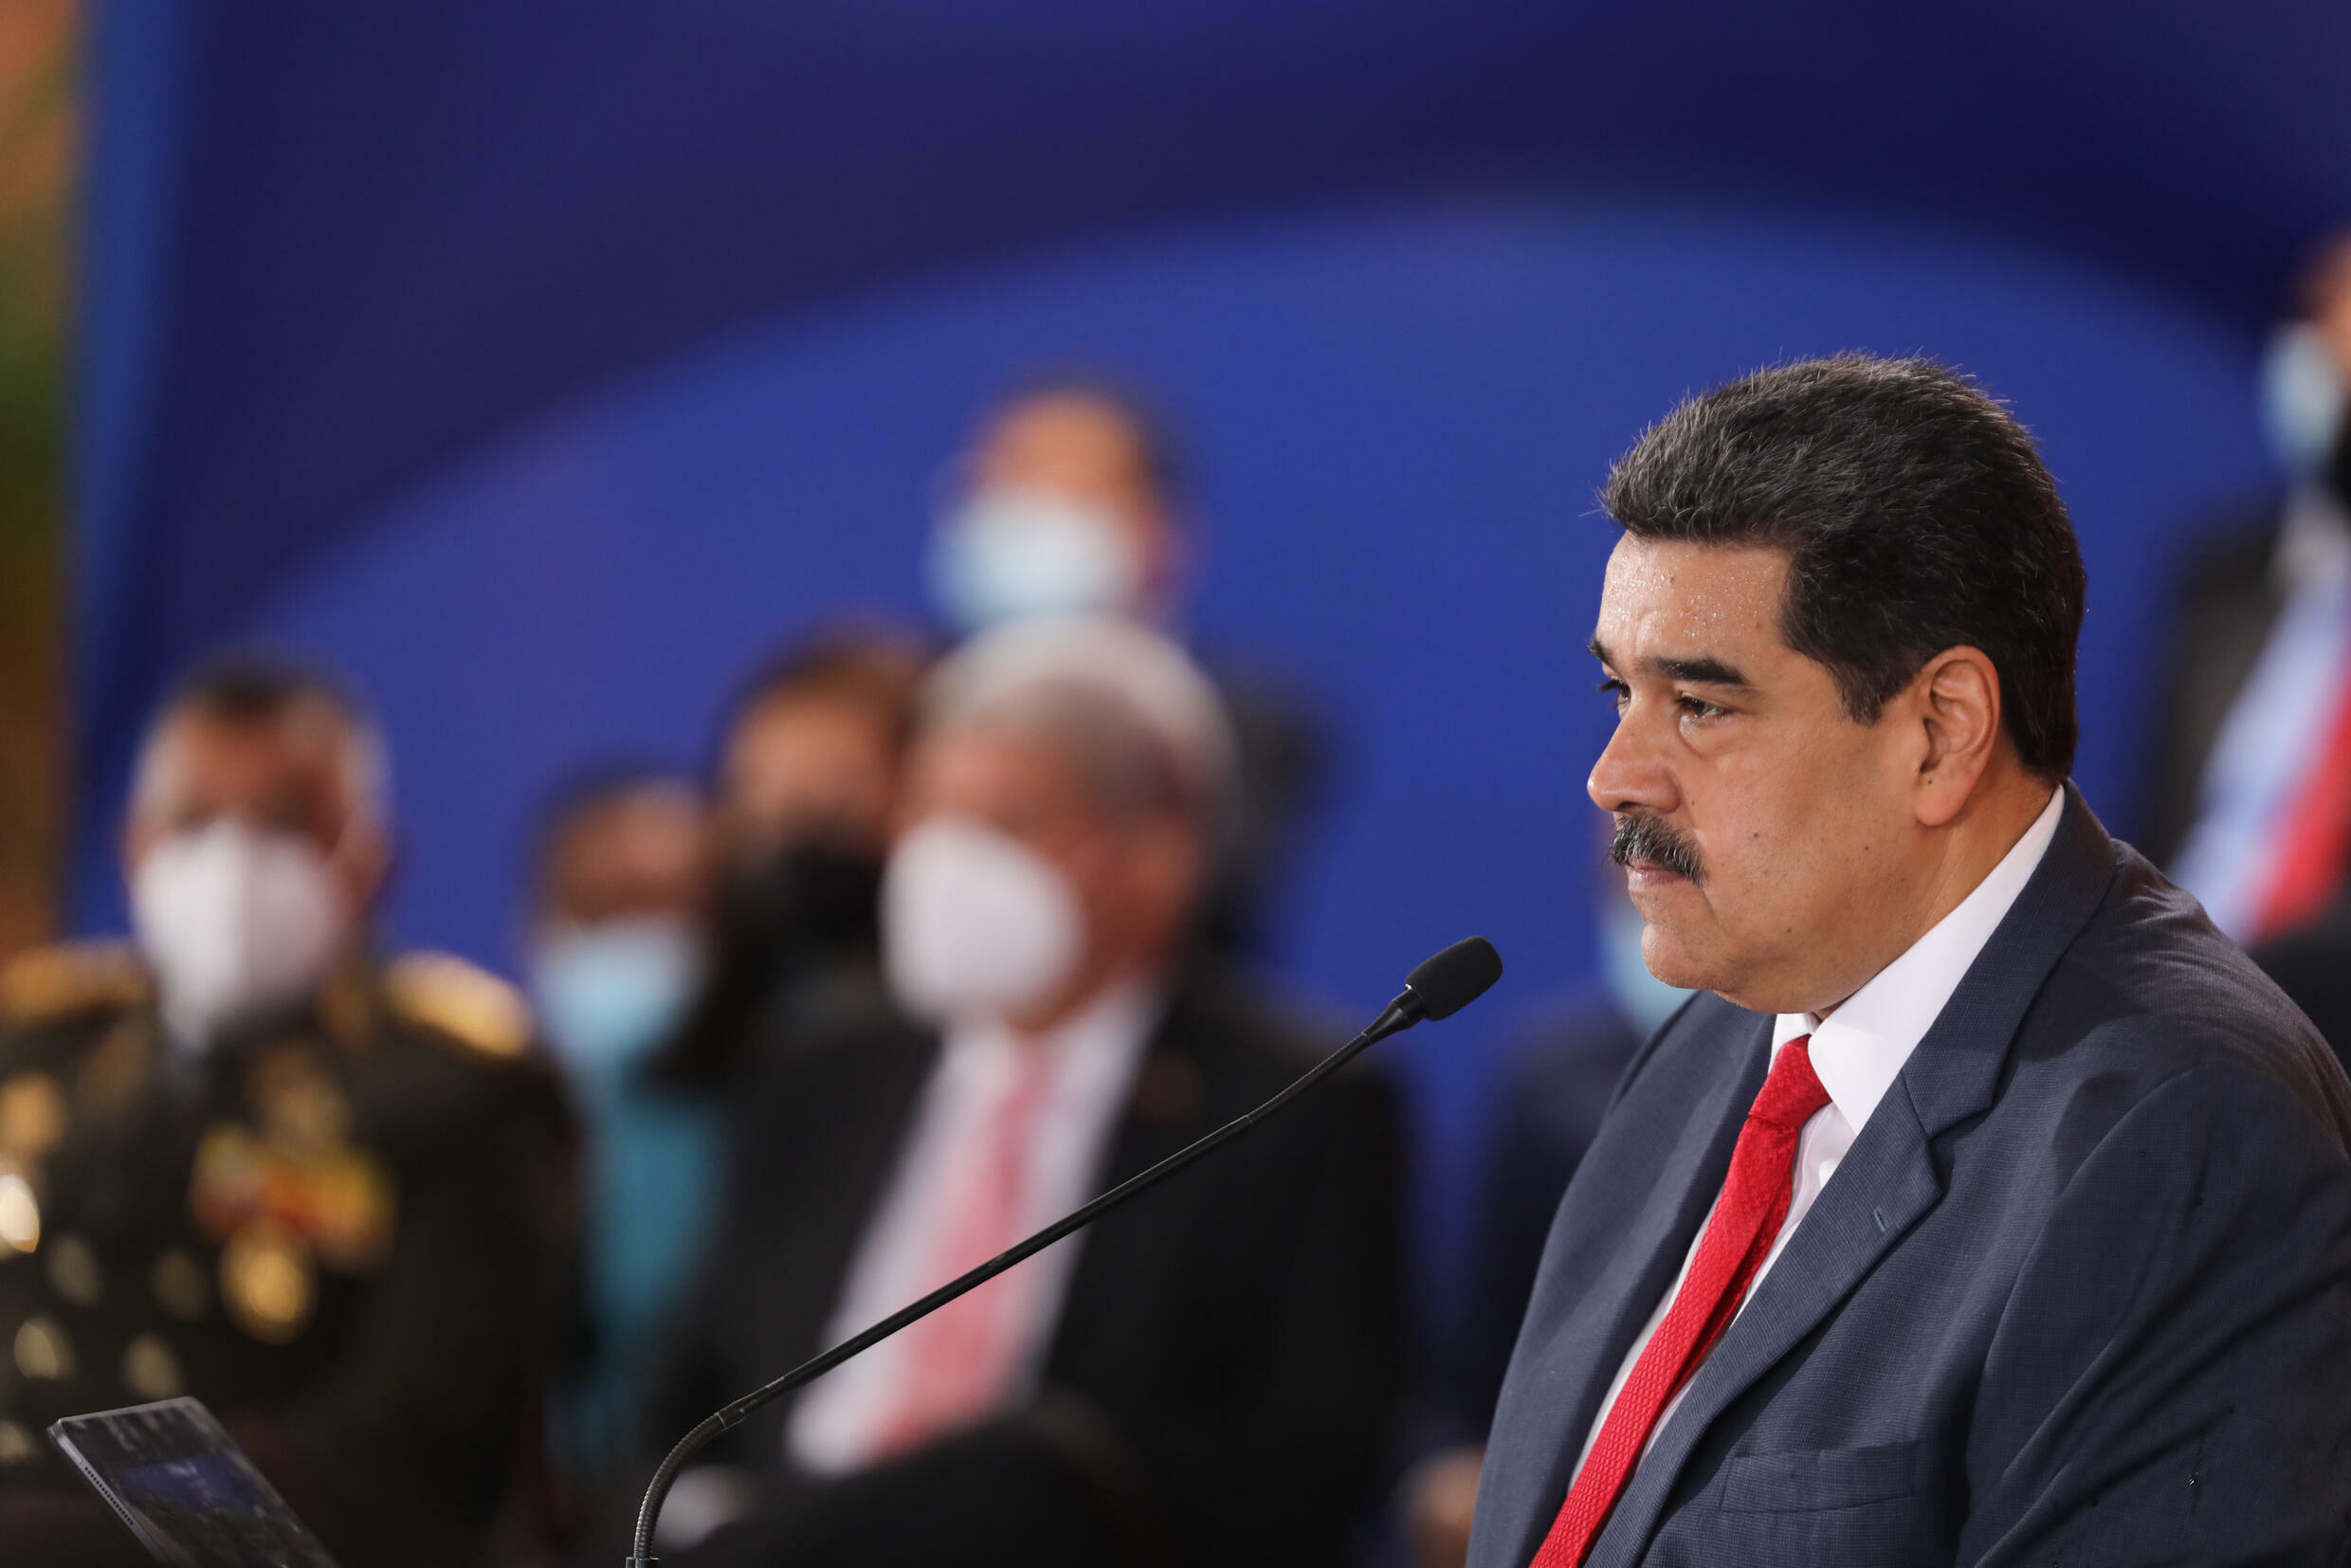 Venezuela President Nicolas Maduro is desperate to gain international credibility and has made moves to restore some democracy in a bid to receive sanctions relief